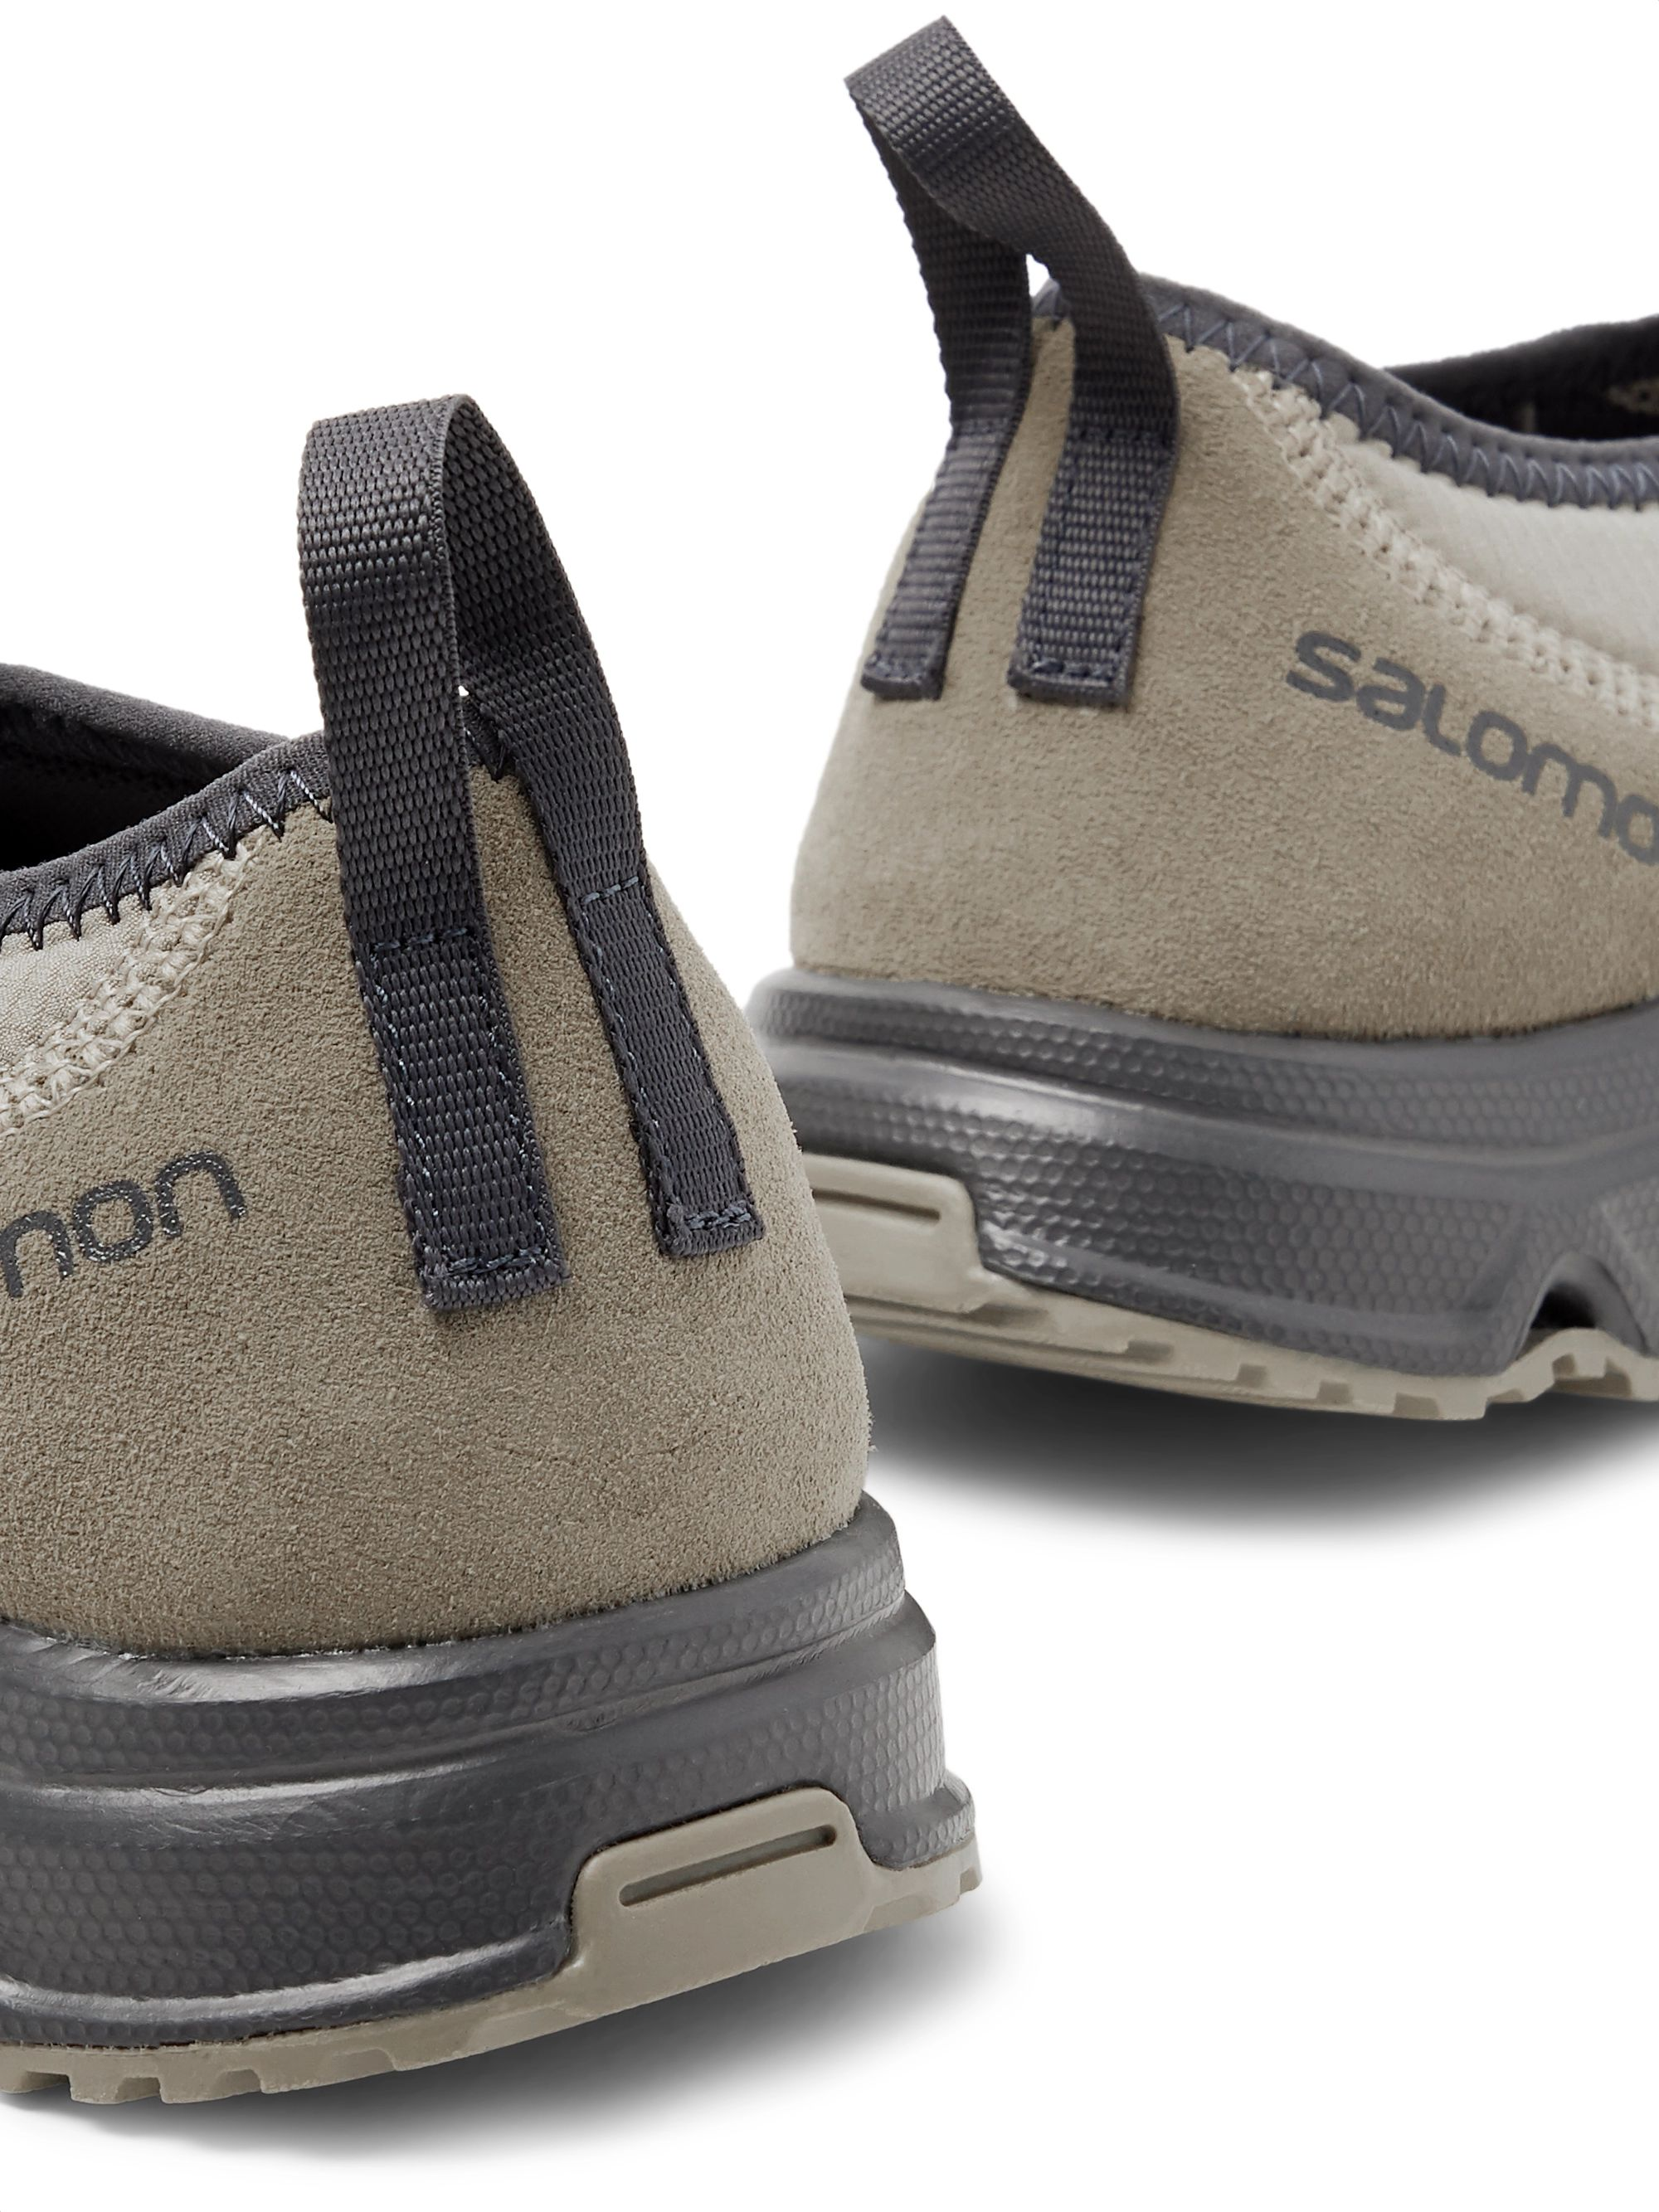 SALOMON RX Snow Moc Advanced Ripstop, Suede and Rubber Sneakers